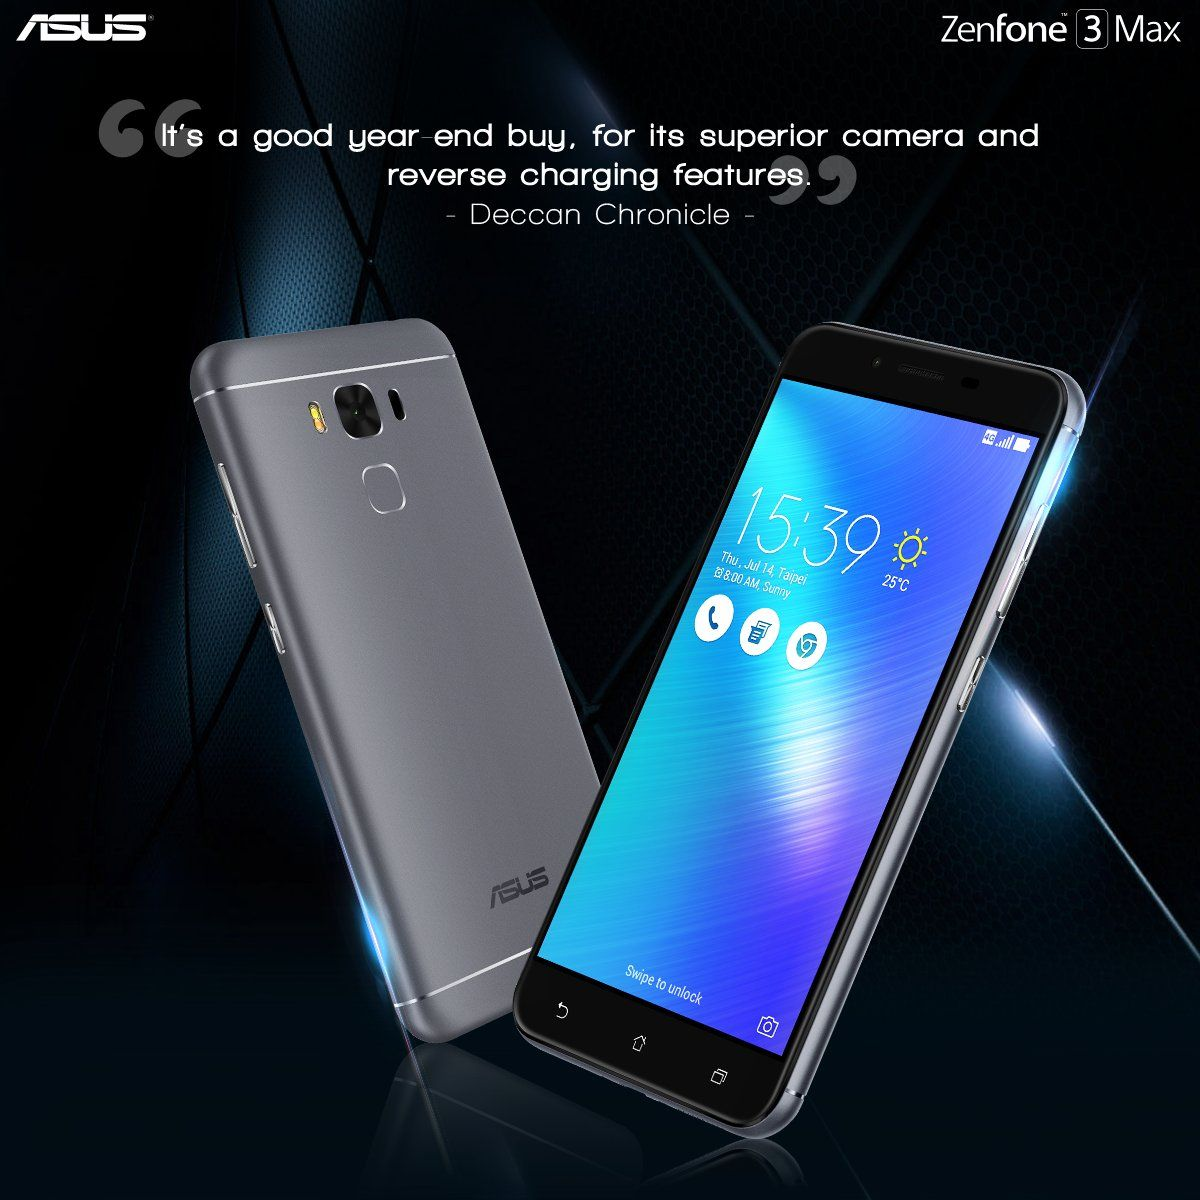 workplaces, new food prezzo 3 zenfone max zc553kl asus anyone tell this issue